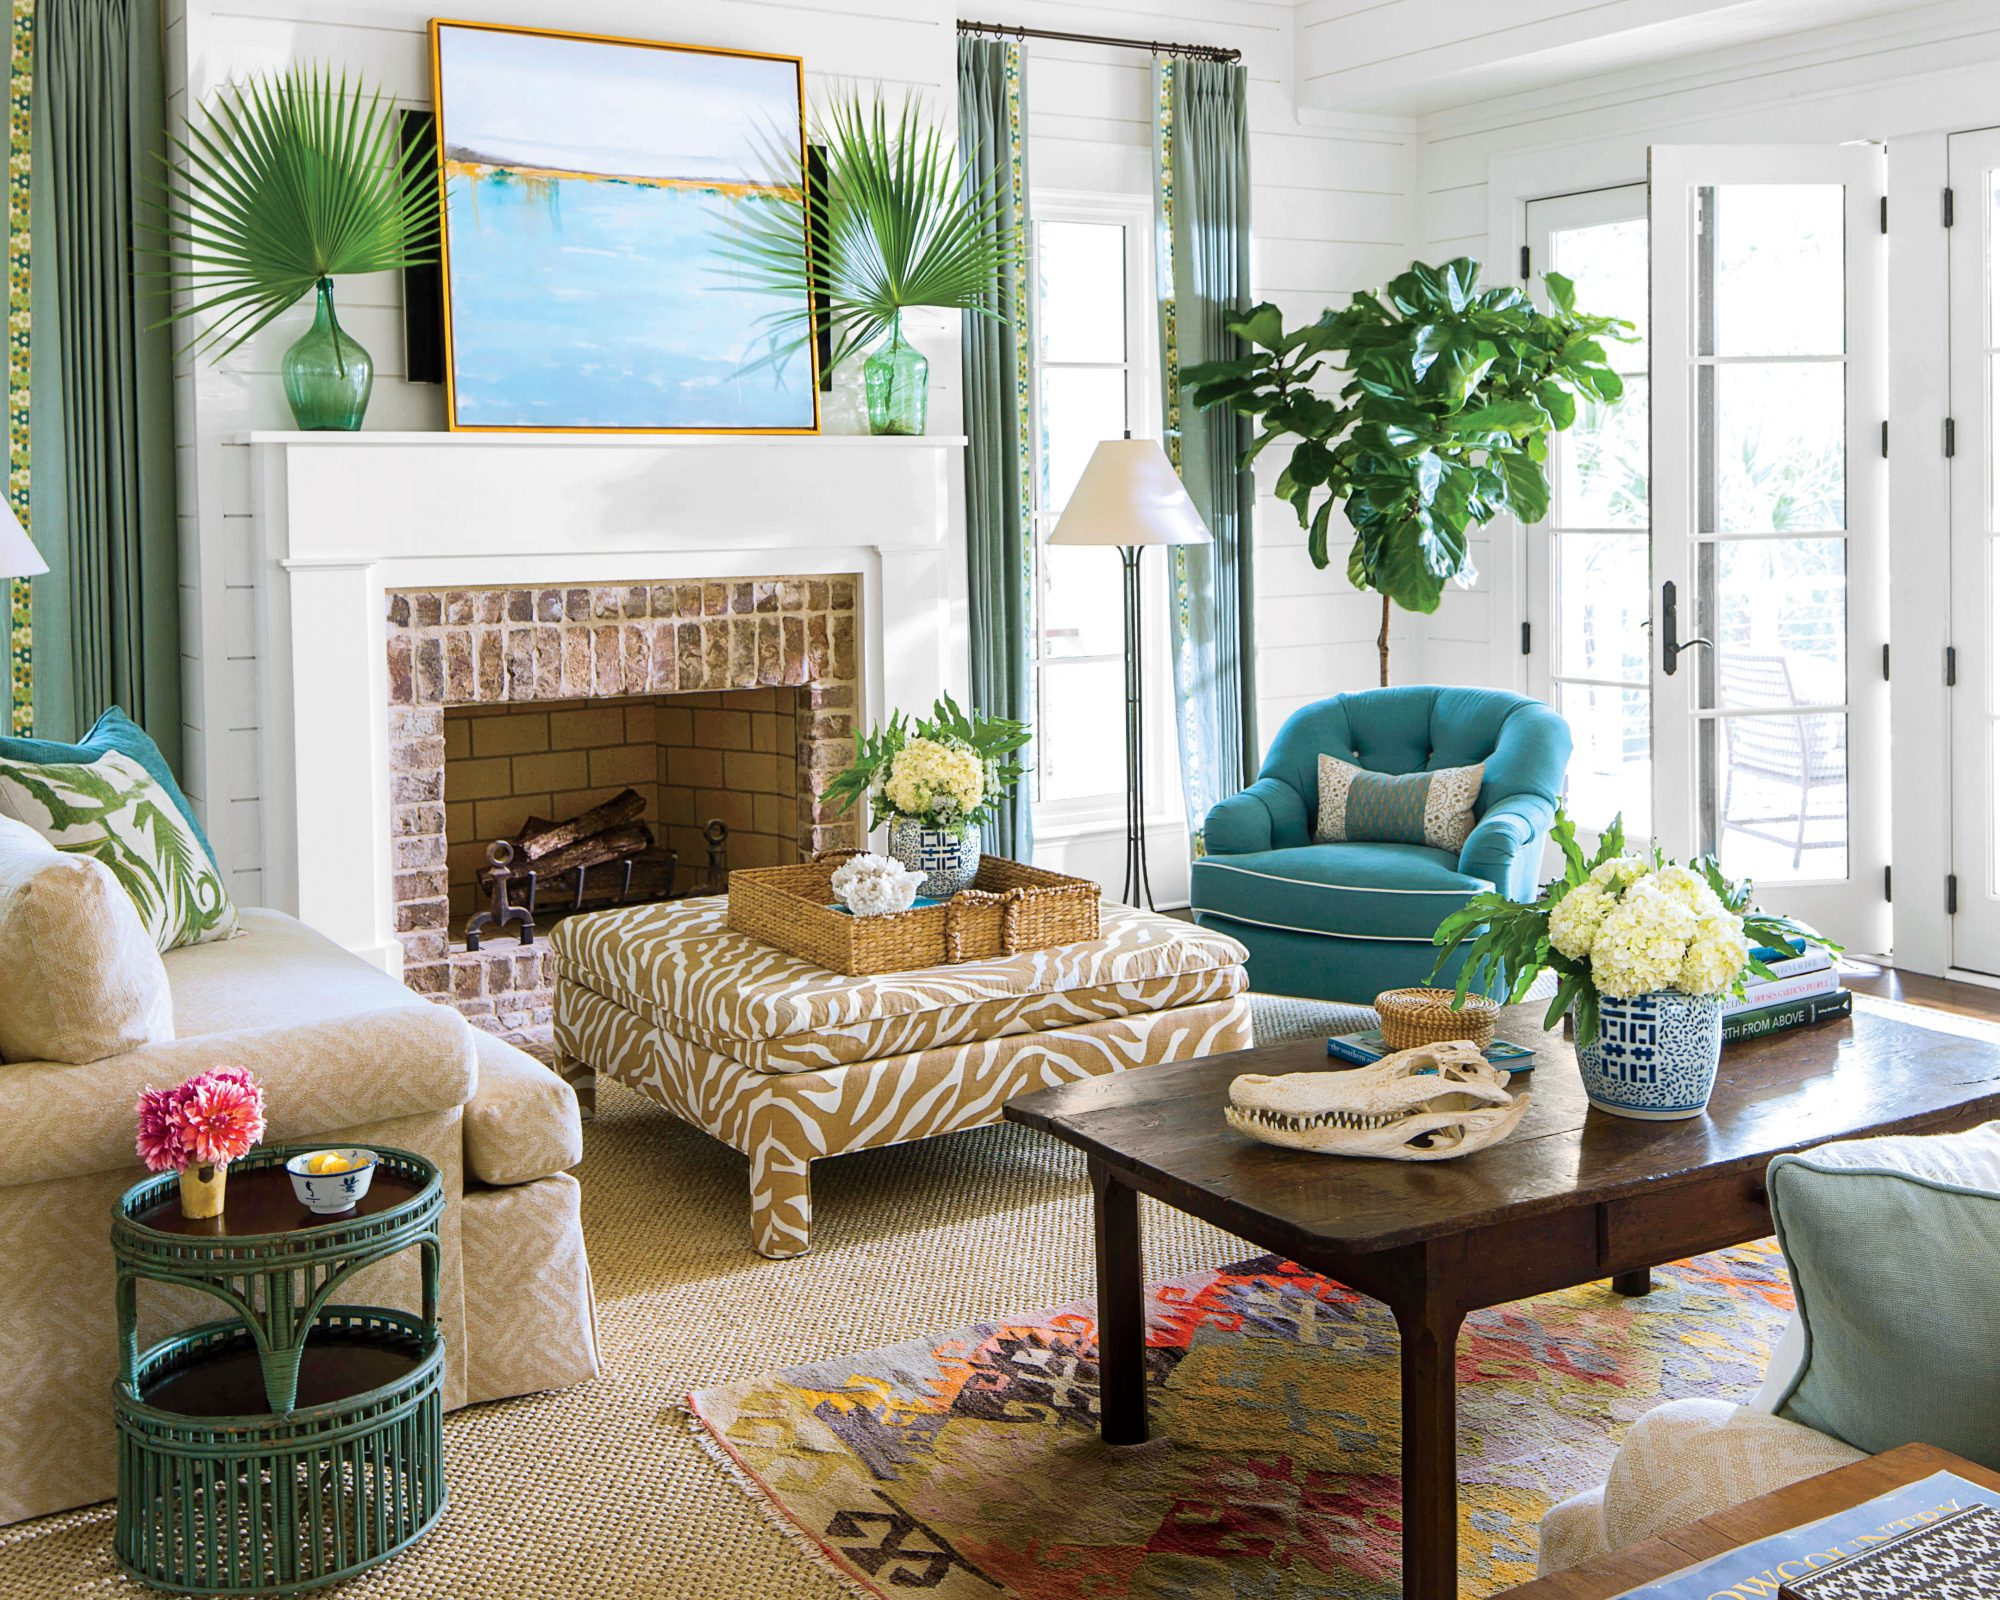 How To Decorate A Living Room 106 Living Room Decorating Ideas  Southern Living